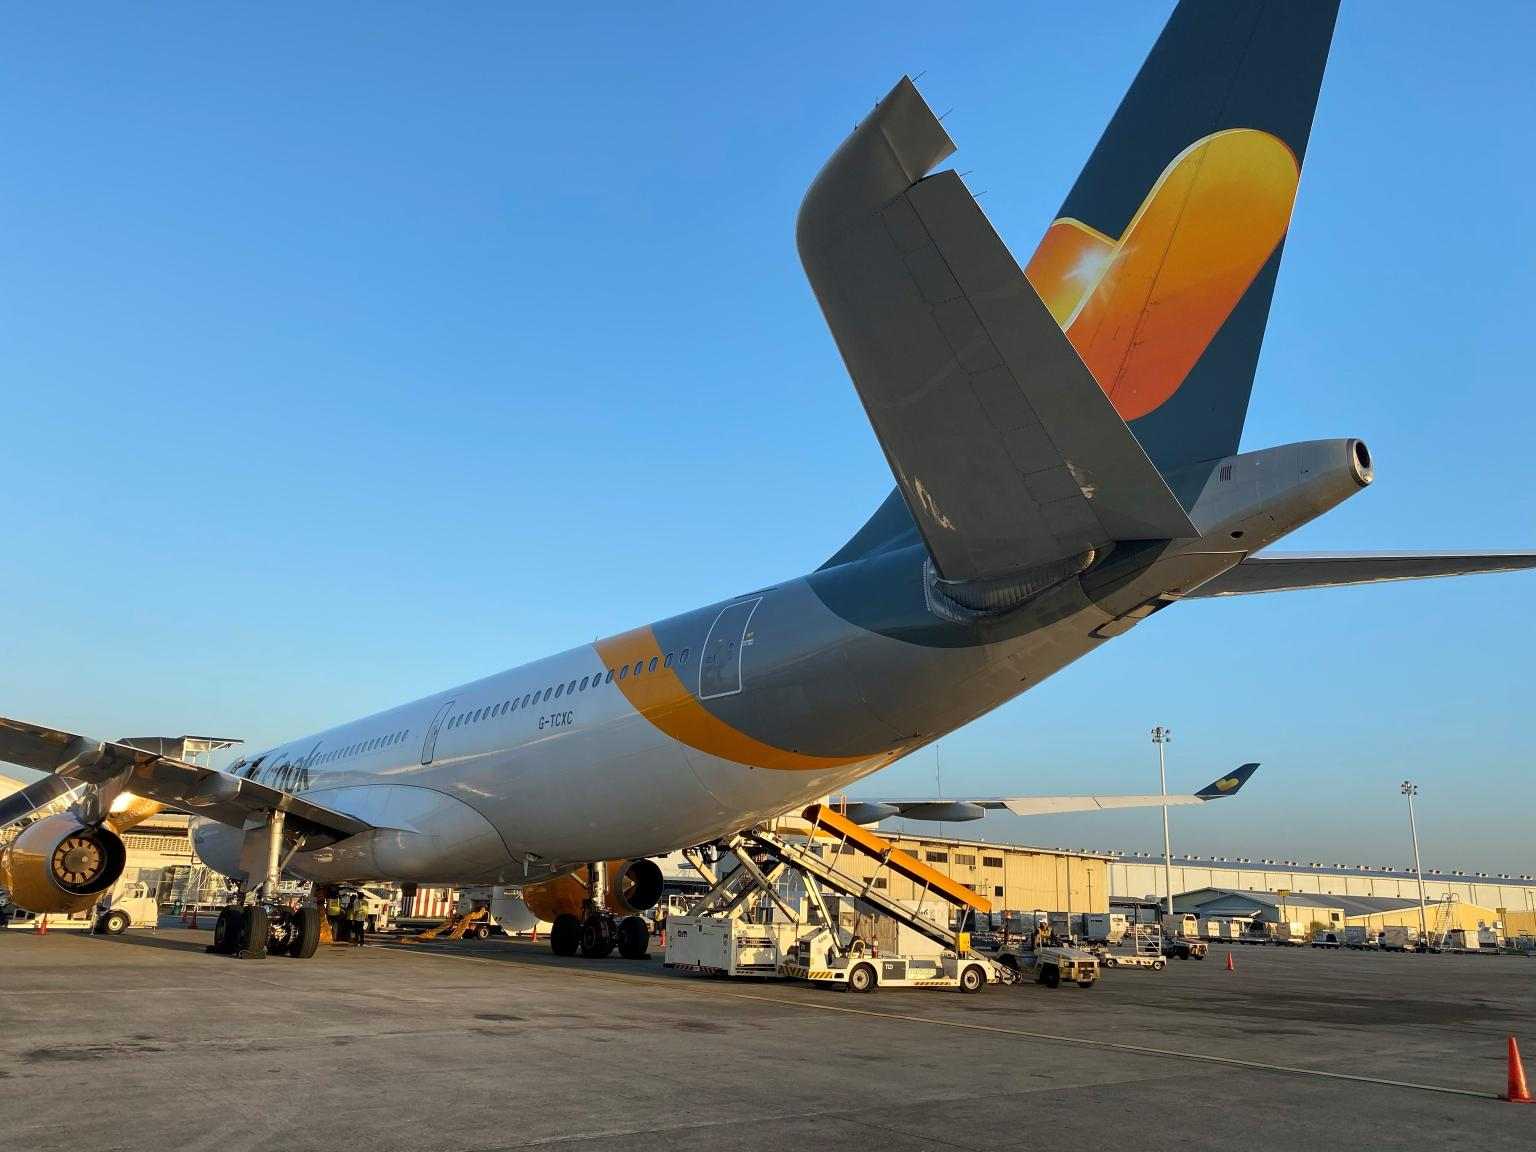 En Airbus A330-200 fra Sunclass Airlines. (Foto: Sunclass Airlines)